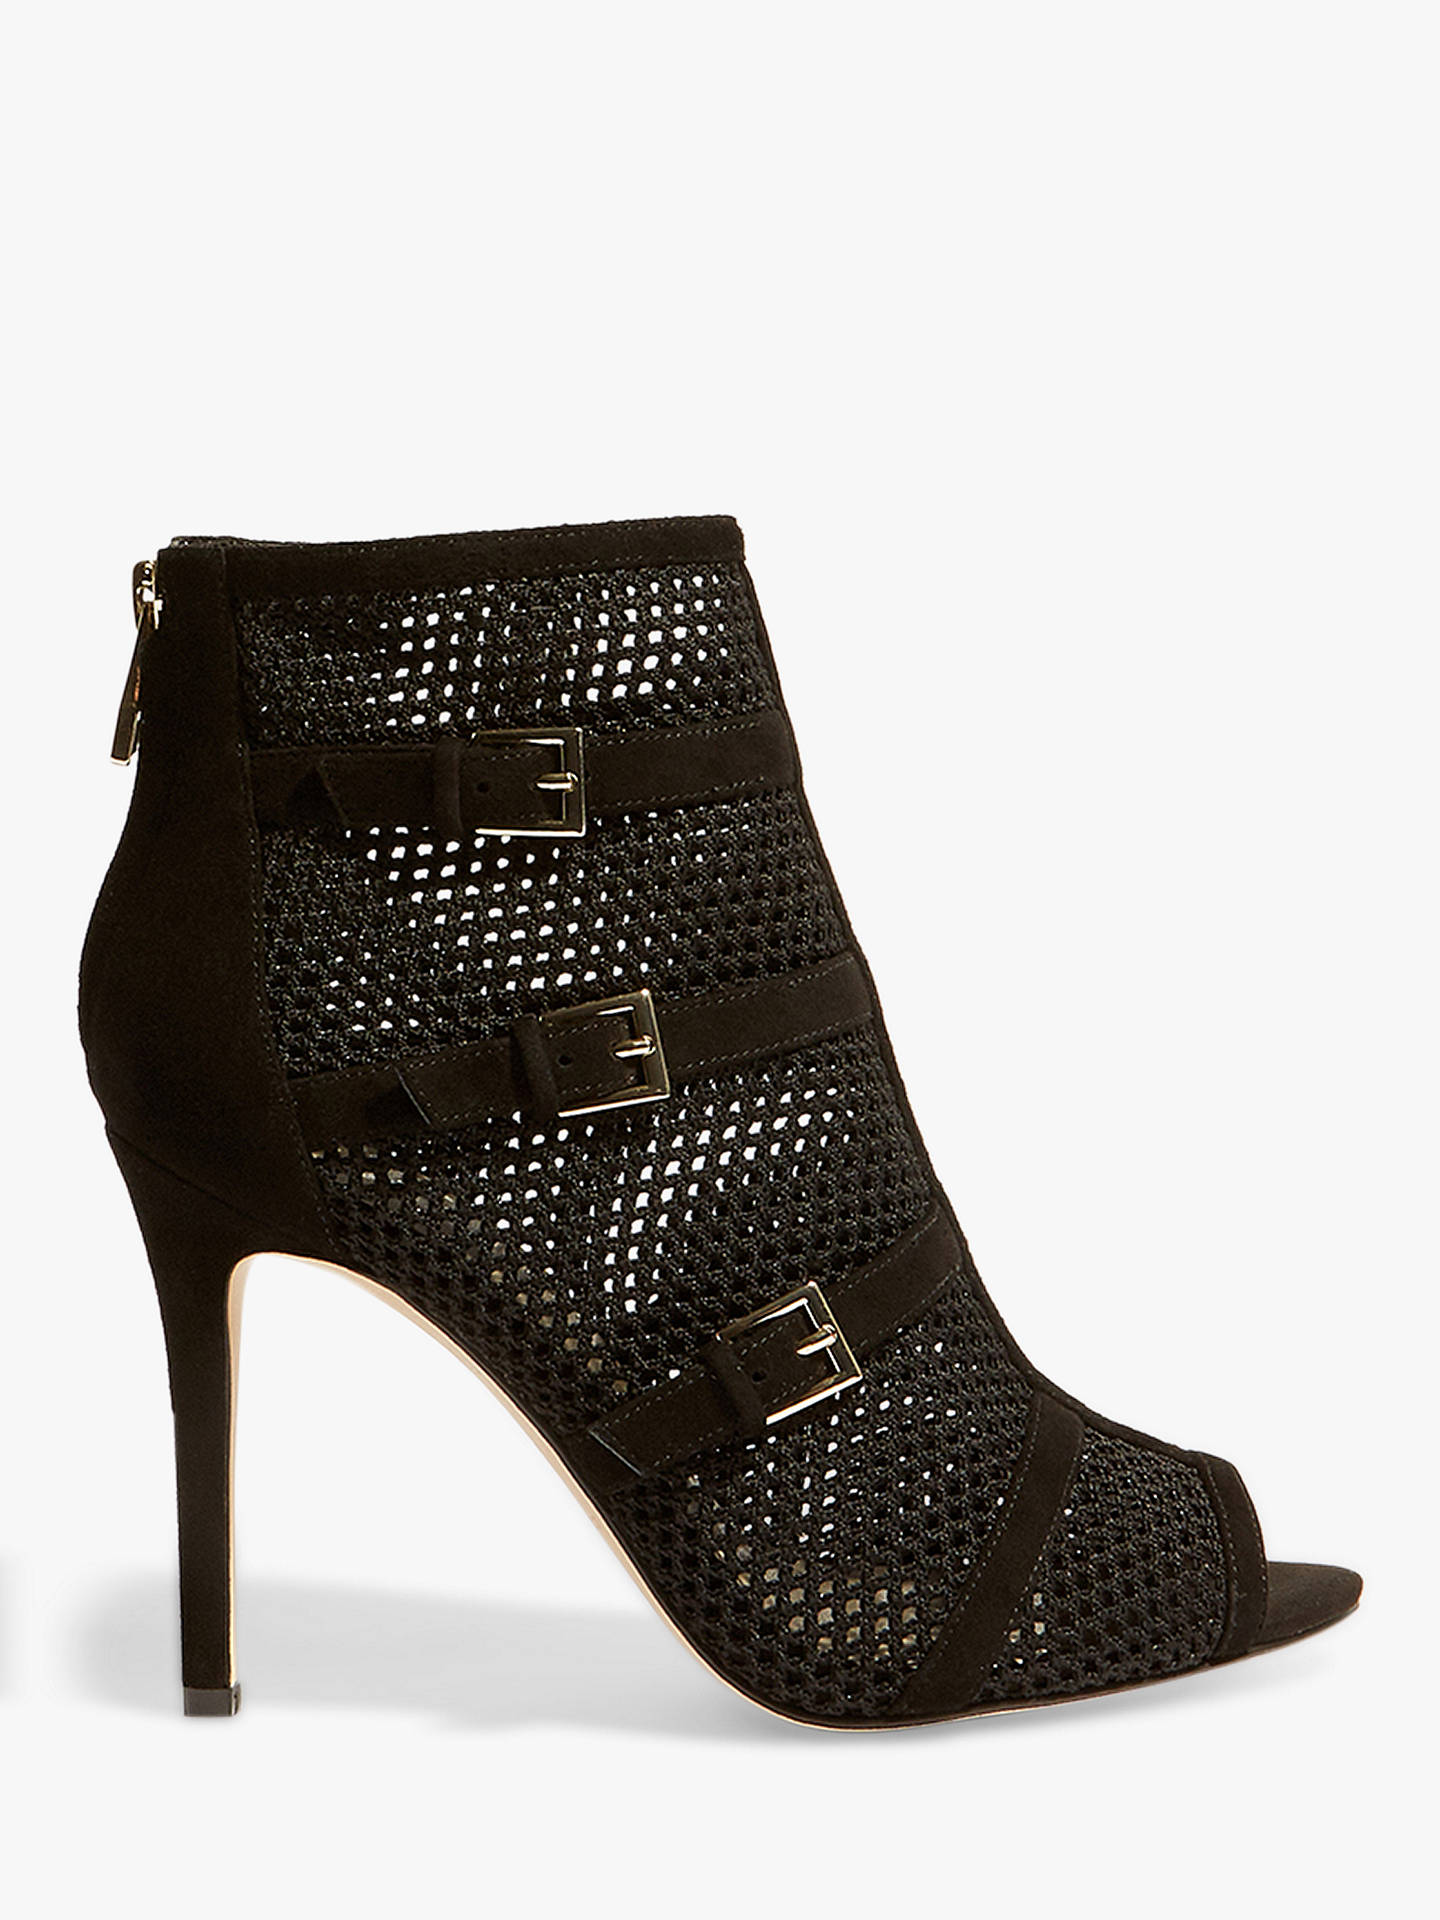 190ea92eee Buy Karen Millen Mesh Cage Stiletto Shoe Boots, Black, 3 Online at  johnlewis.